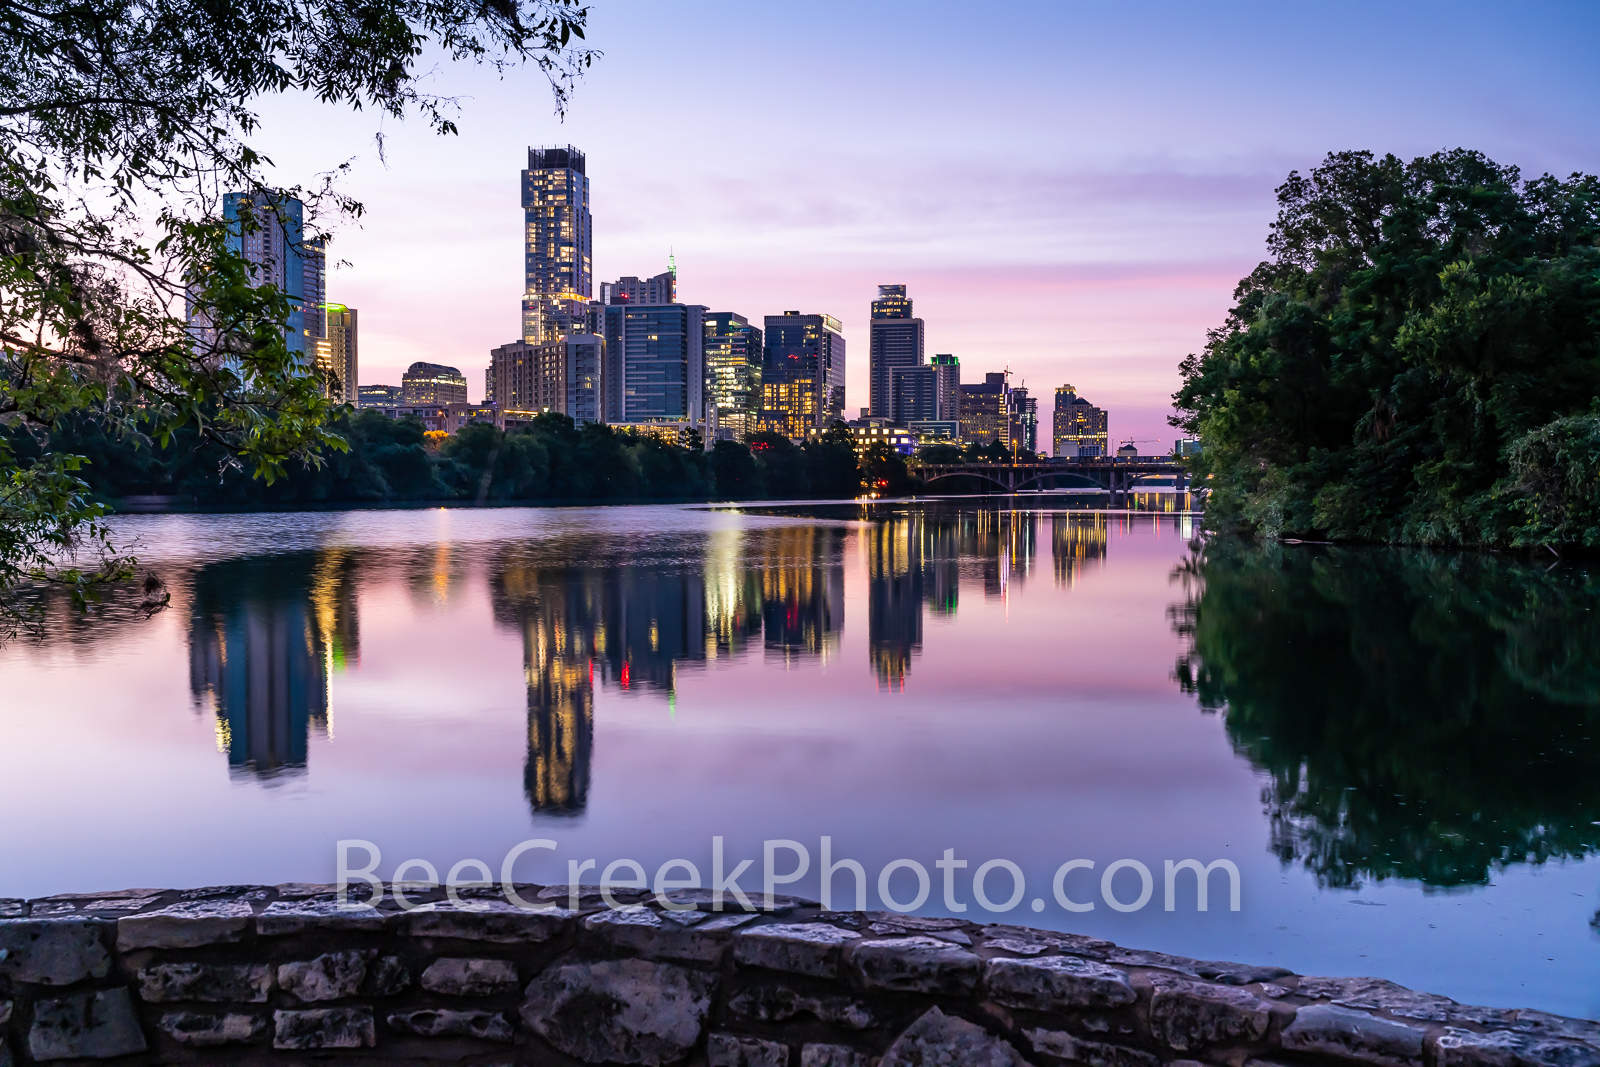 Austin skyline, Lou Neff Point, Lou Neff, architecture, sunrise, pinks, violets, purple, Lady Bird Lake, water, reflection, reflections, buildings, skyscrapers, Austonian, Independent, Google, Zilker